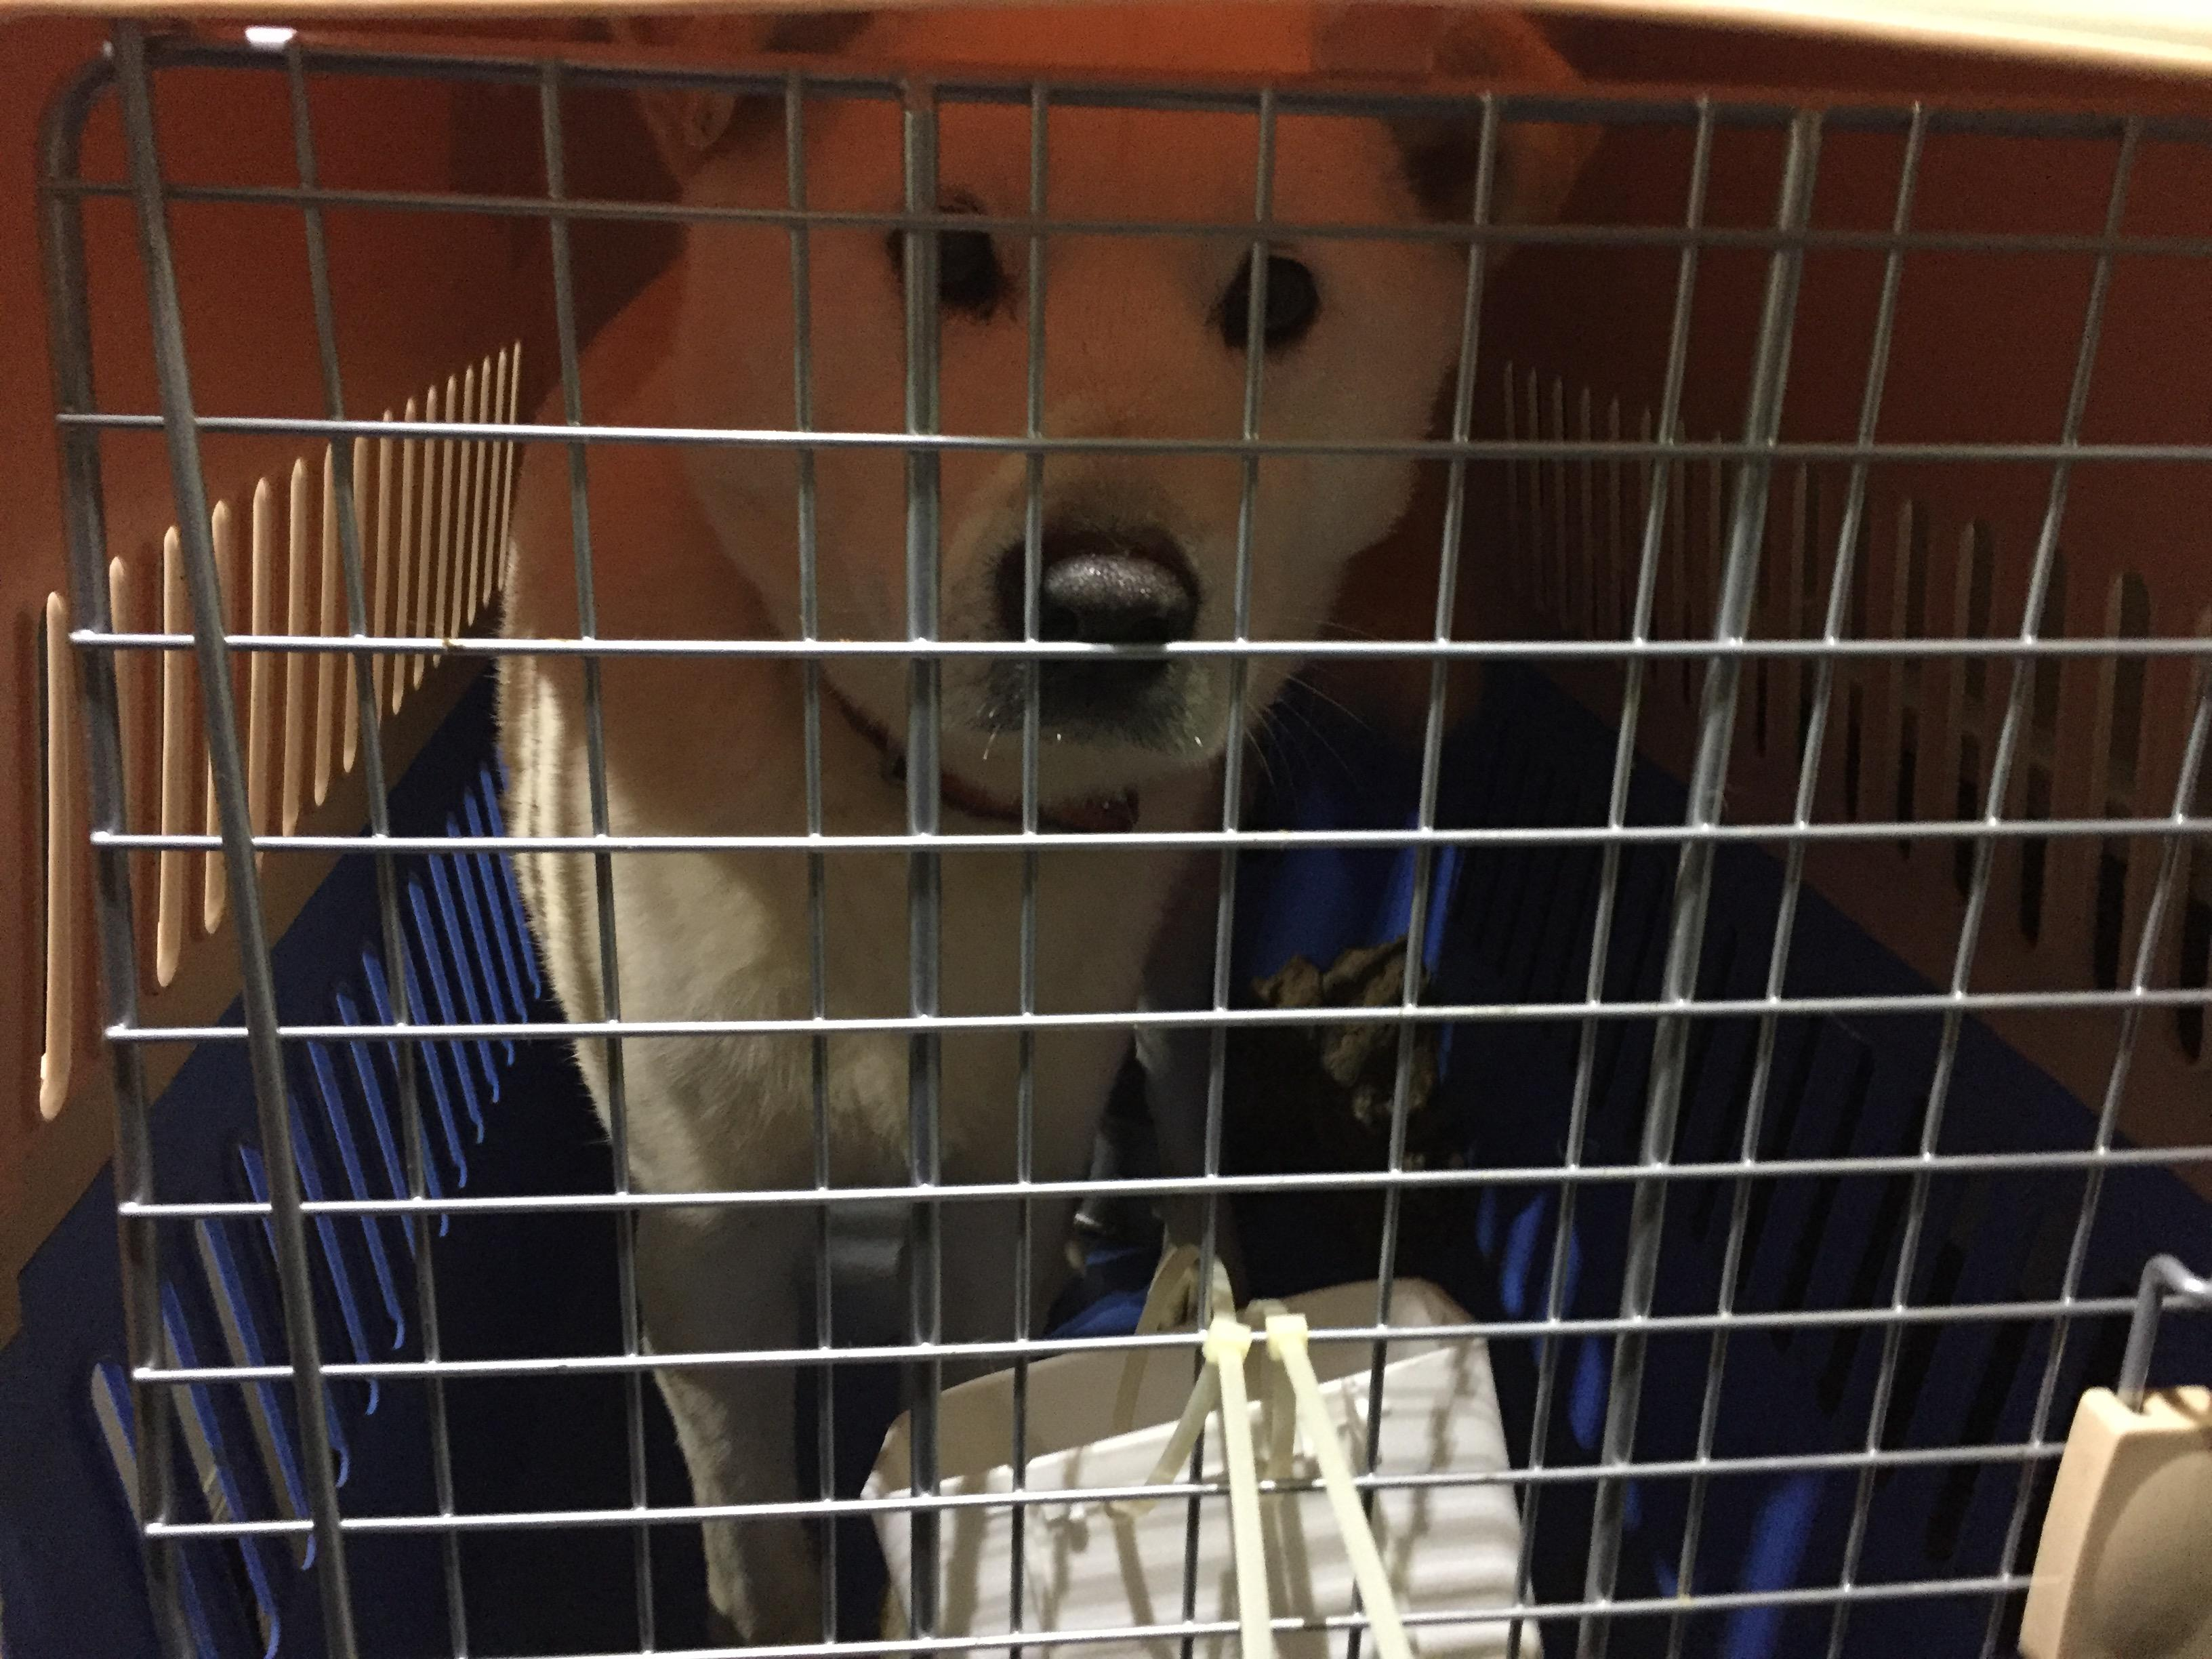 Gus in airplane crate. (Photo courtesy of Cari Tetzlaff)